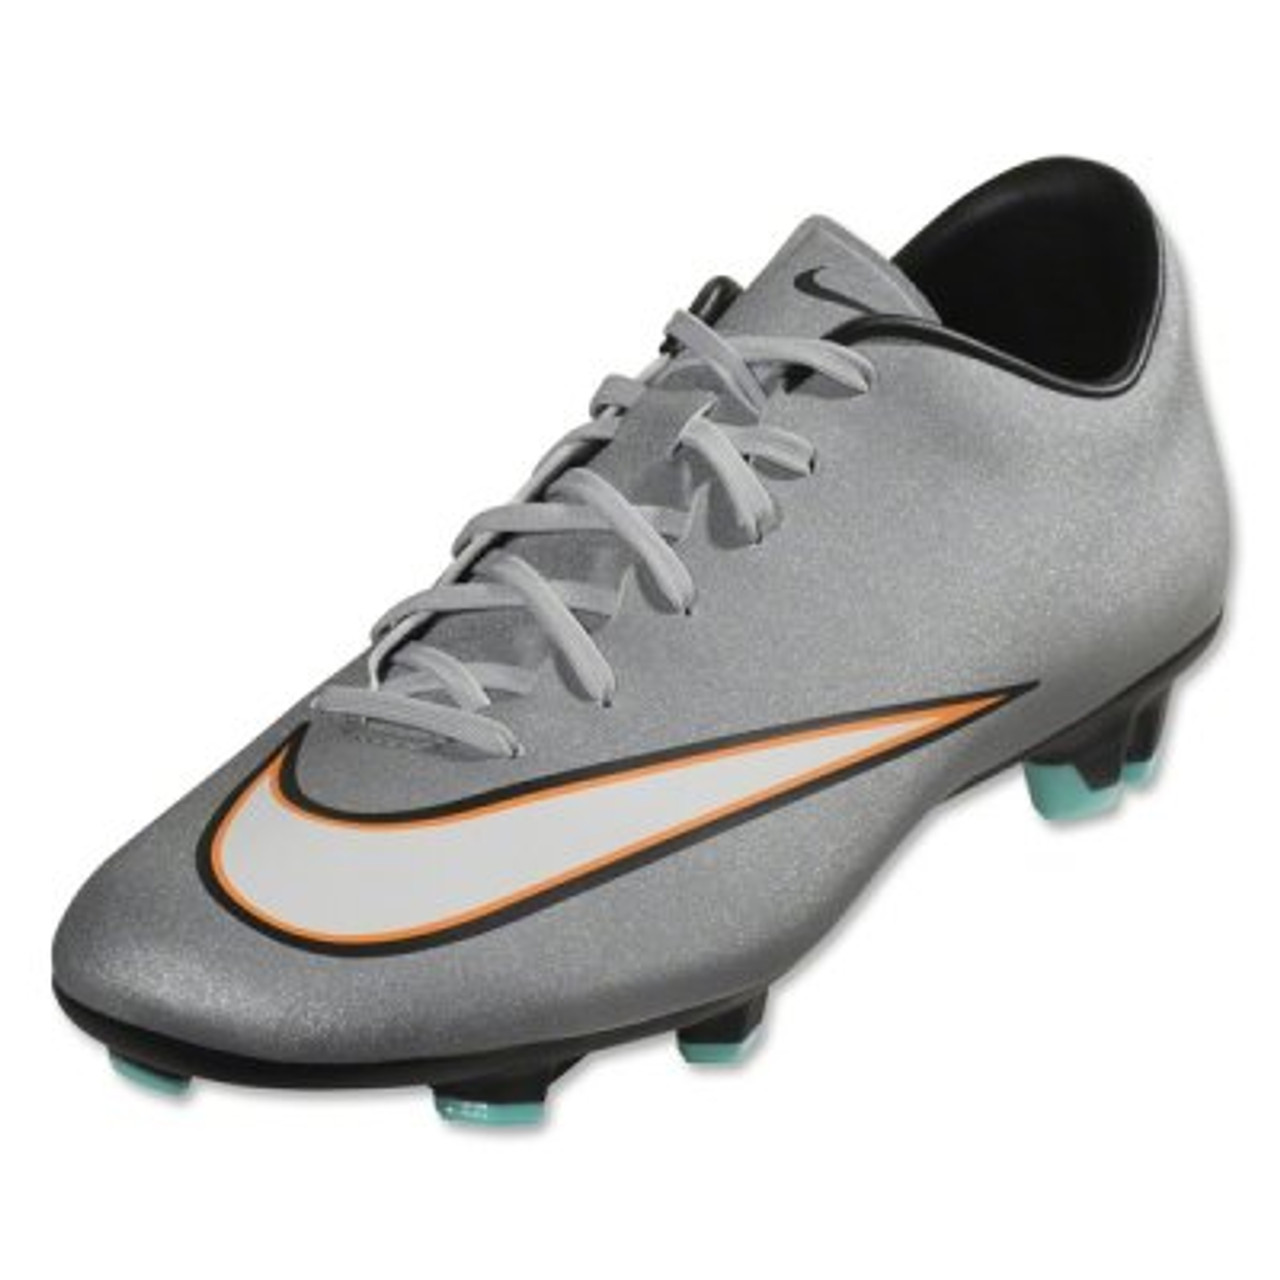 brand new d7c25 6e7c1 Nike Mercurial Victory V CR7 FG - Silver Turquoise - ohp soccer